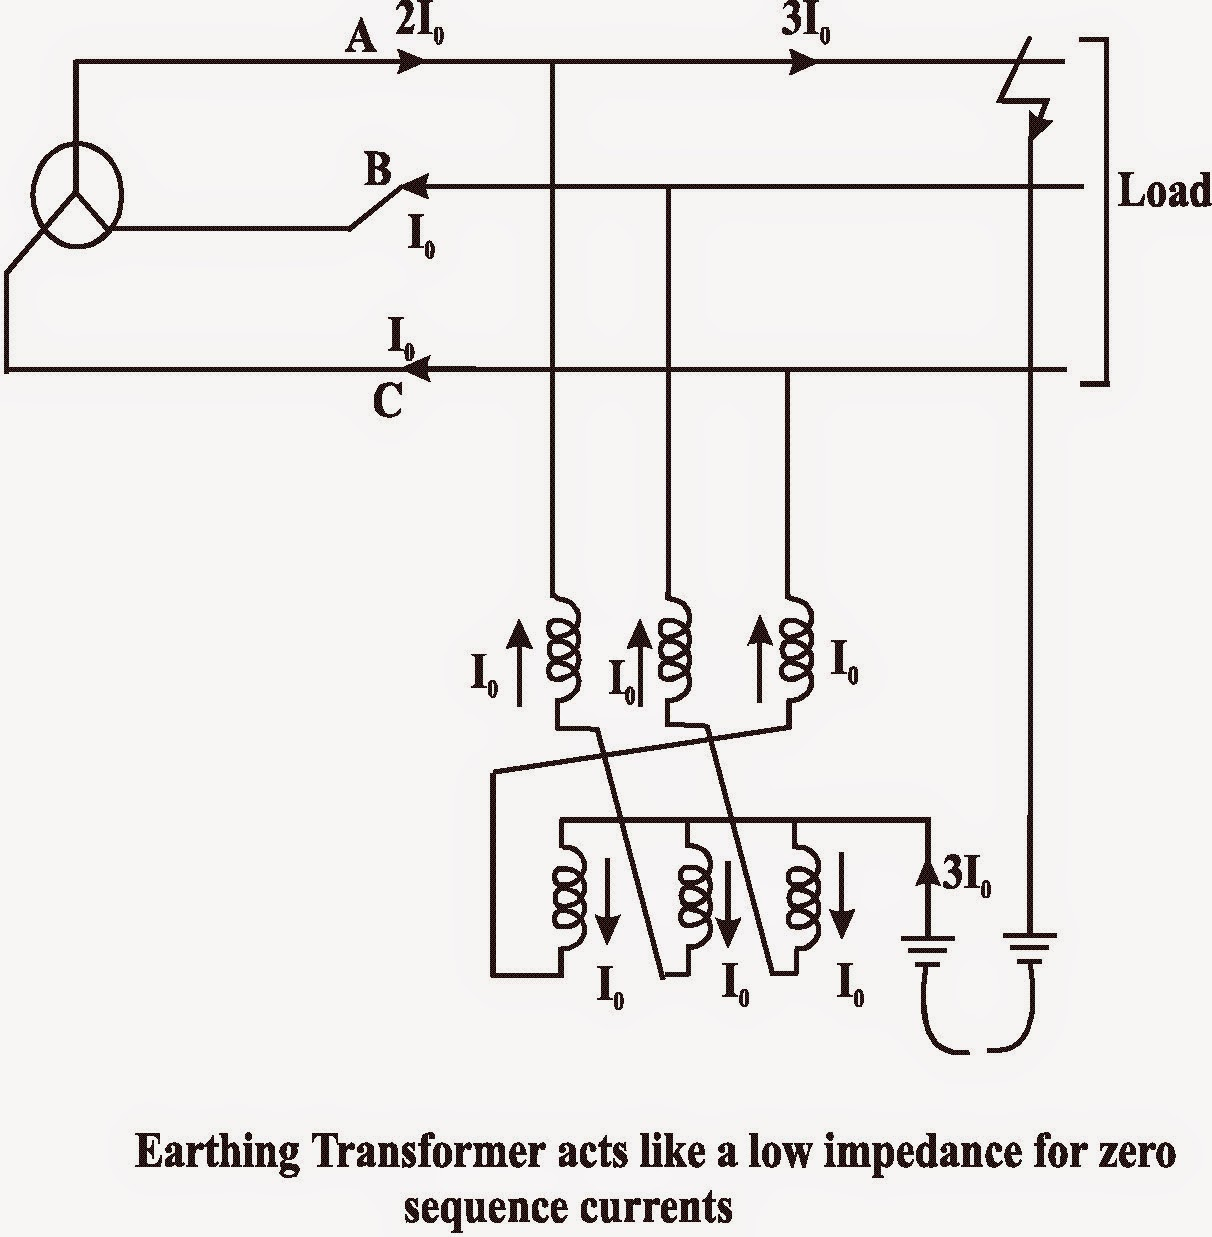 Earthing And Bonding Electrical Saftey Techniques Neutral Grounding Transformer Wiring Diagram The Earth Fault Current Flowing In Faulted Line Divides Itself Into Three Equal Parts Through Each Phase Winding Of